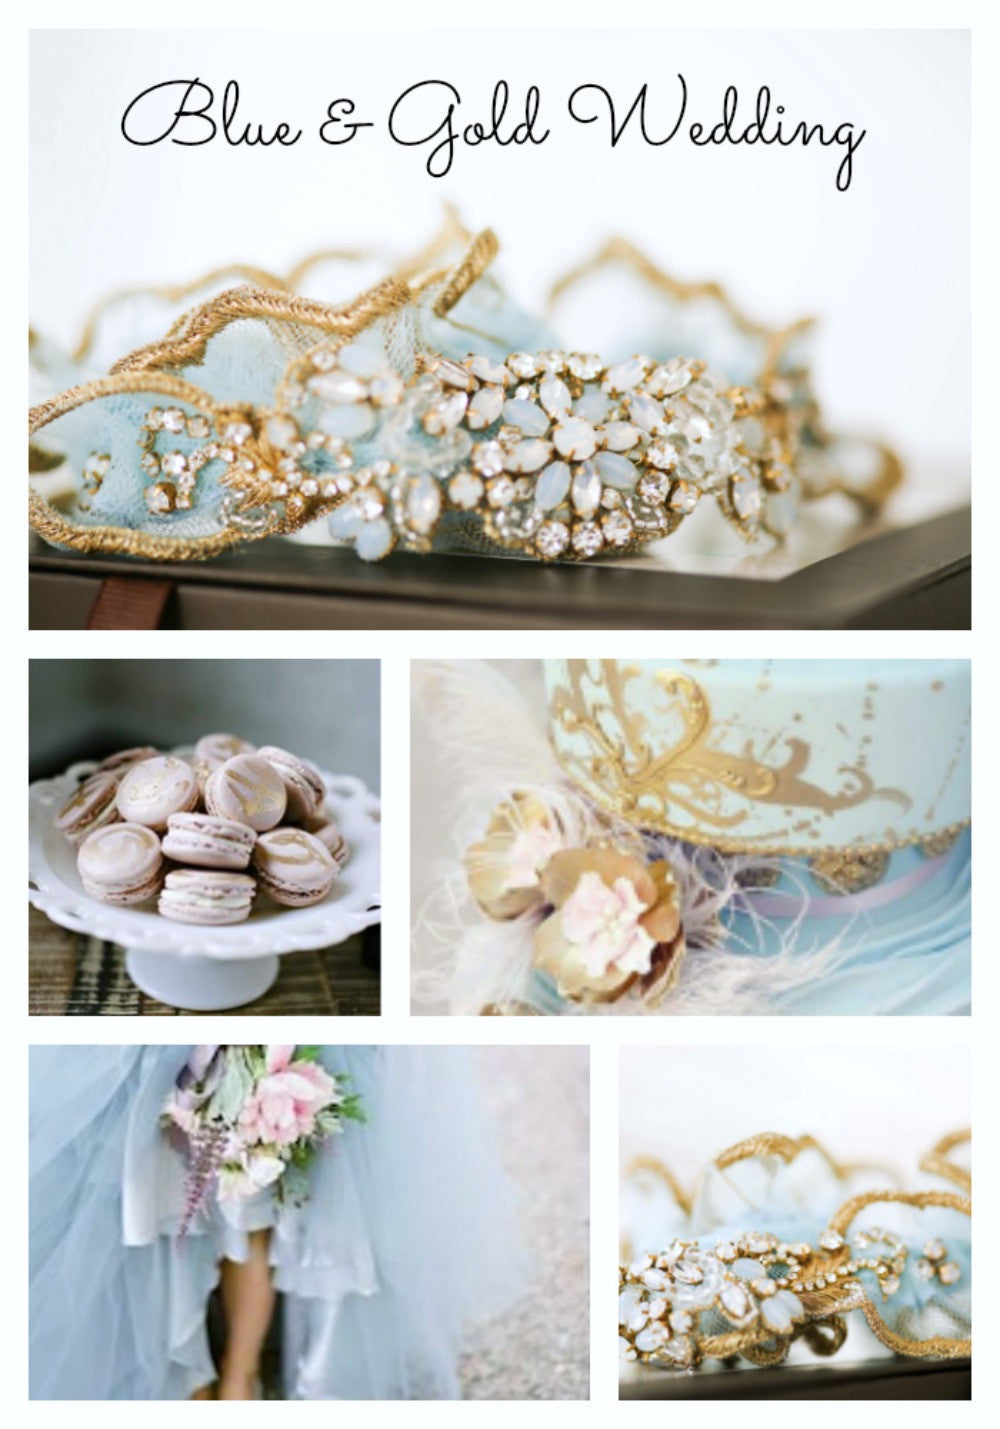 Blue and Gold Wedding Ideas in 2017